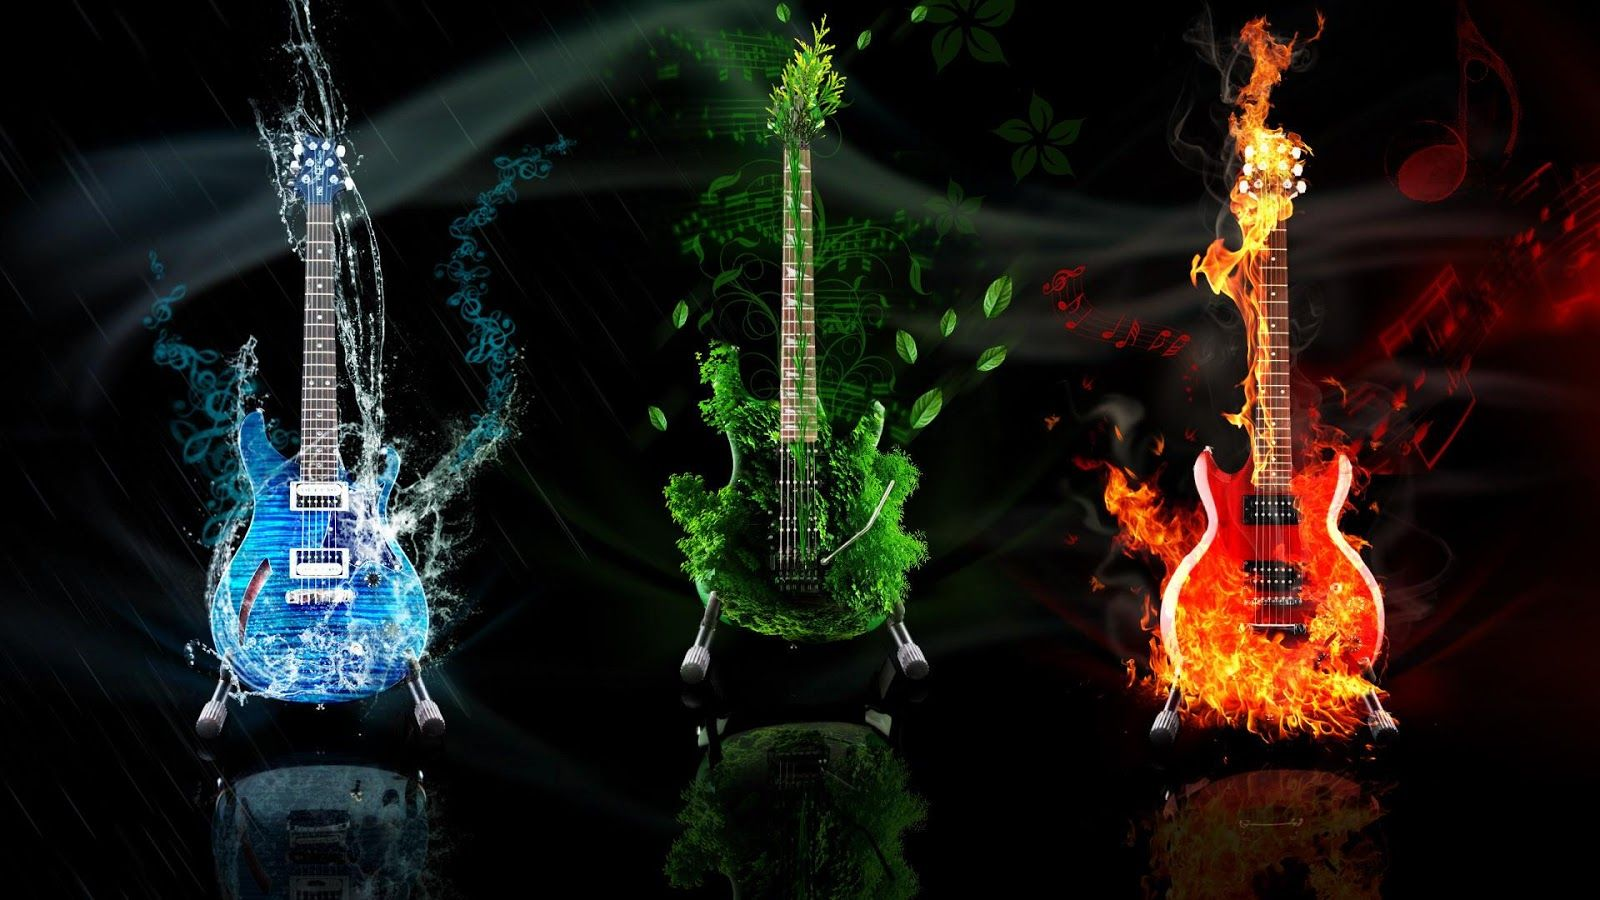 Rocksmith 2014 Review Does Rocksmith 2014 Work Abstract Guitar Music Wallpaper Widescreen Wallpaper Guitar Images